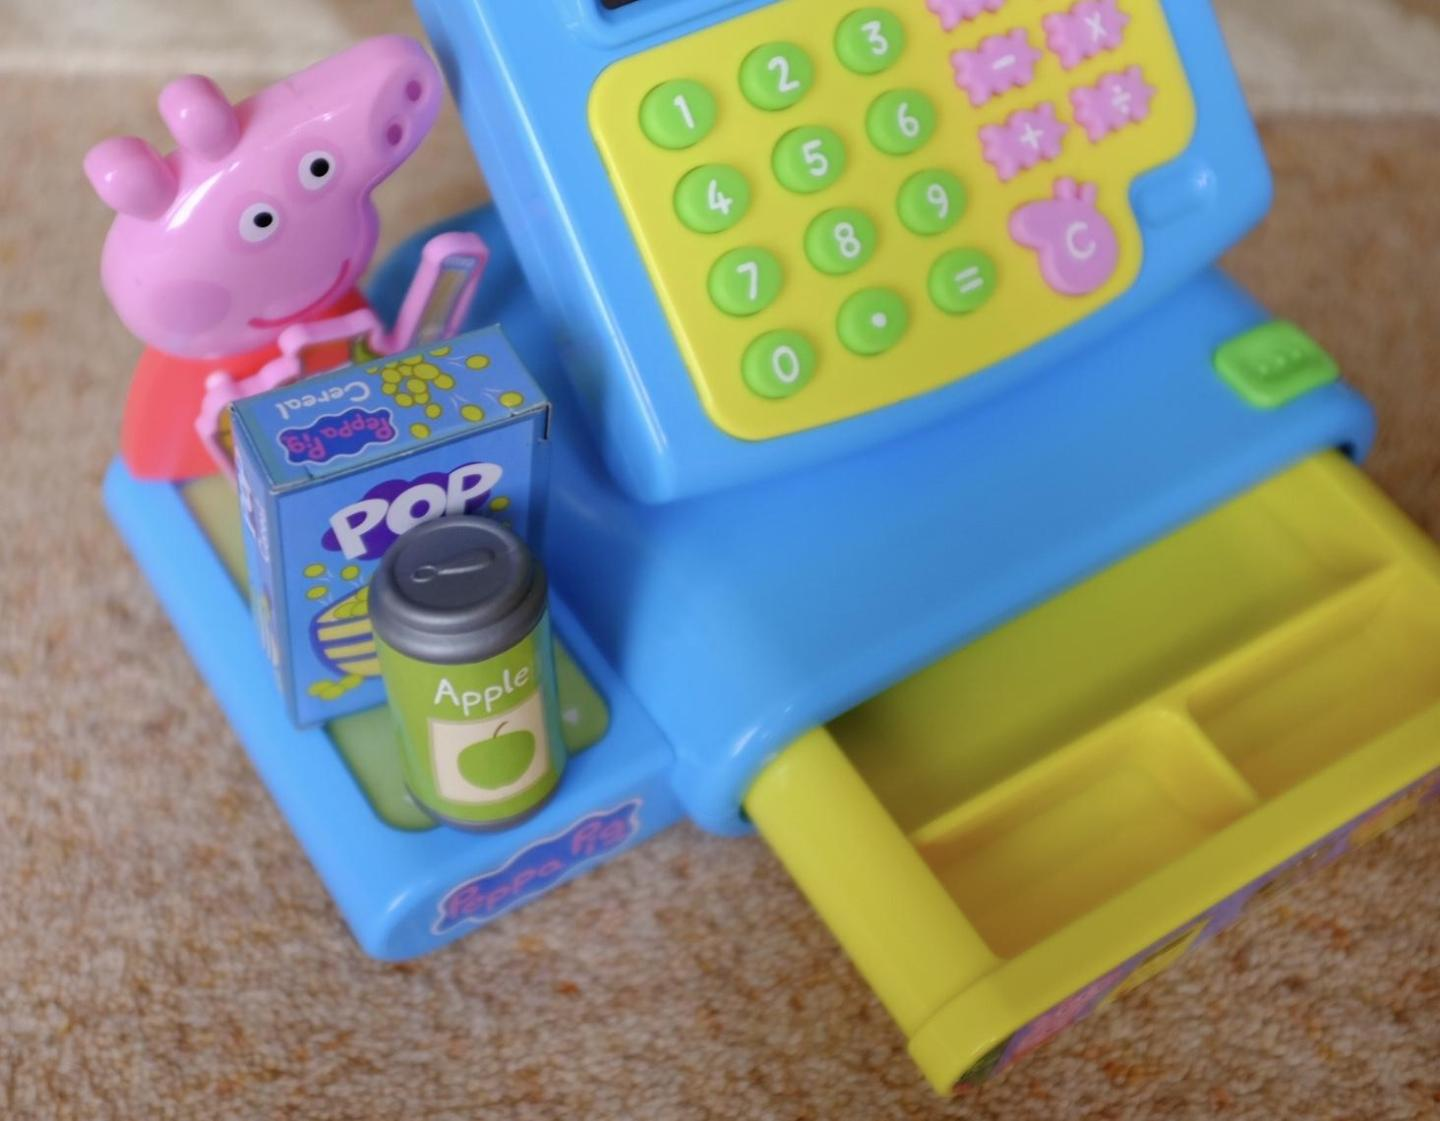 The till and conveyor belt on The Peppa Pig cash register